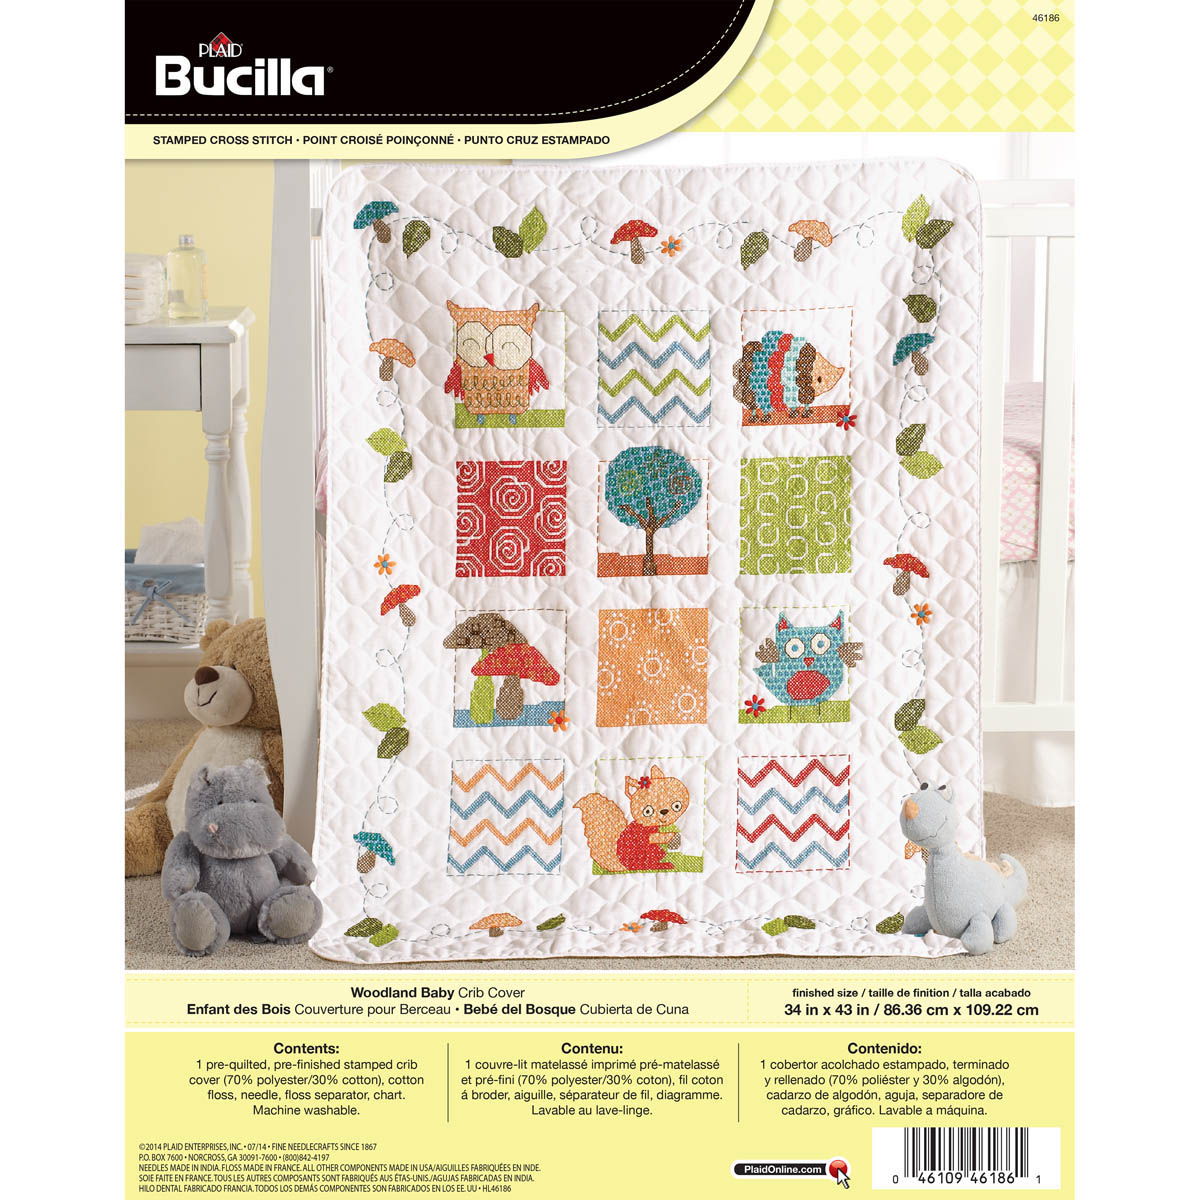 Bucilla ® Baby - Stamped Cross Stitch - Crib Ensembles - Woodland Baby - Crib Cover - 46186